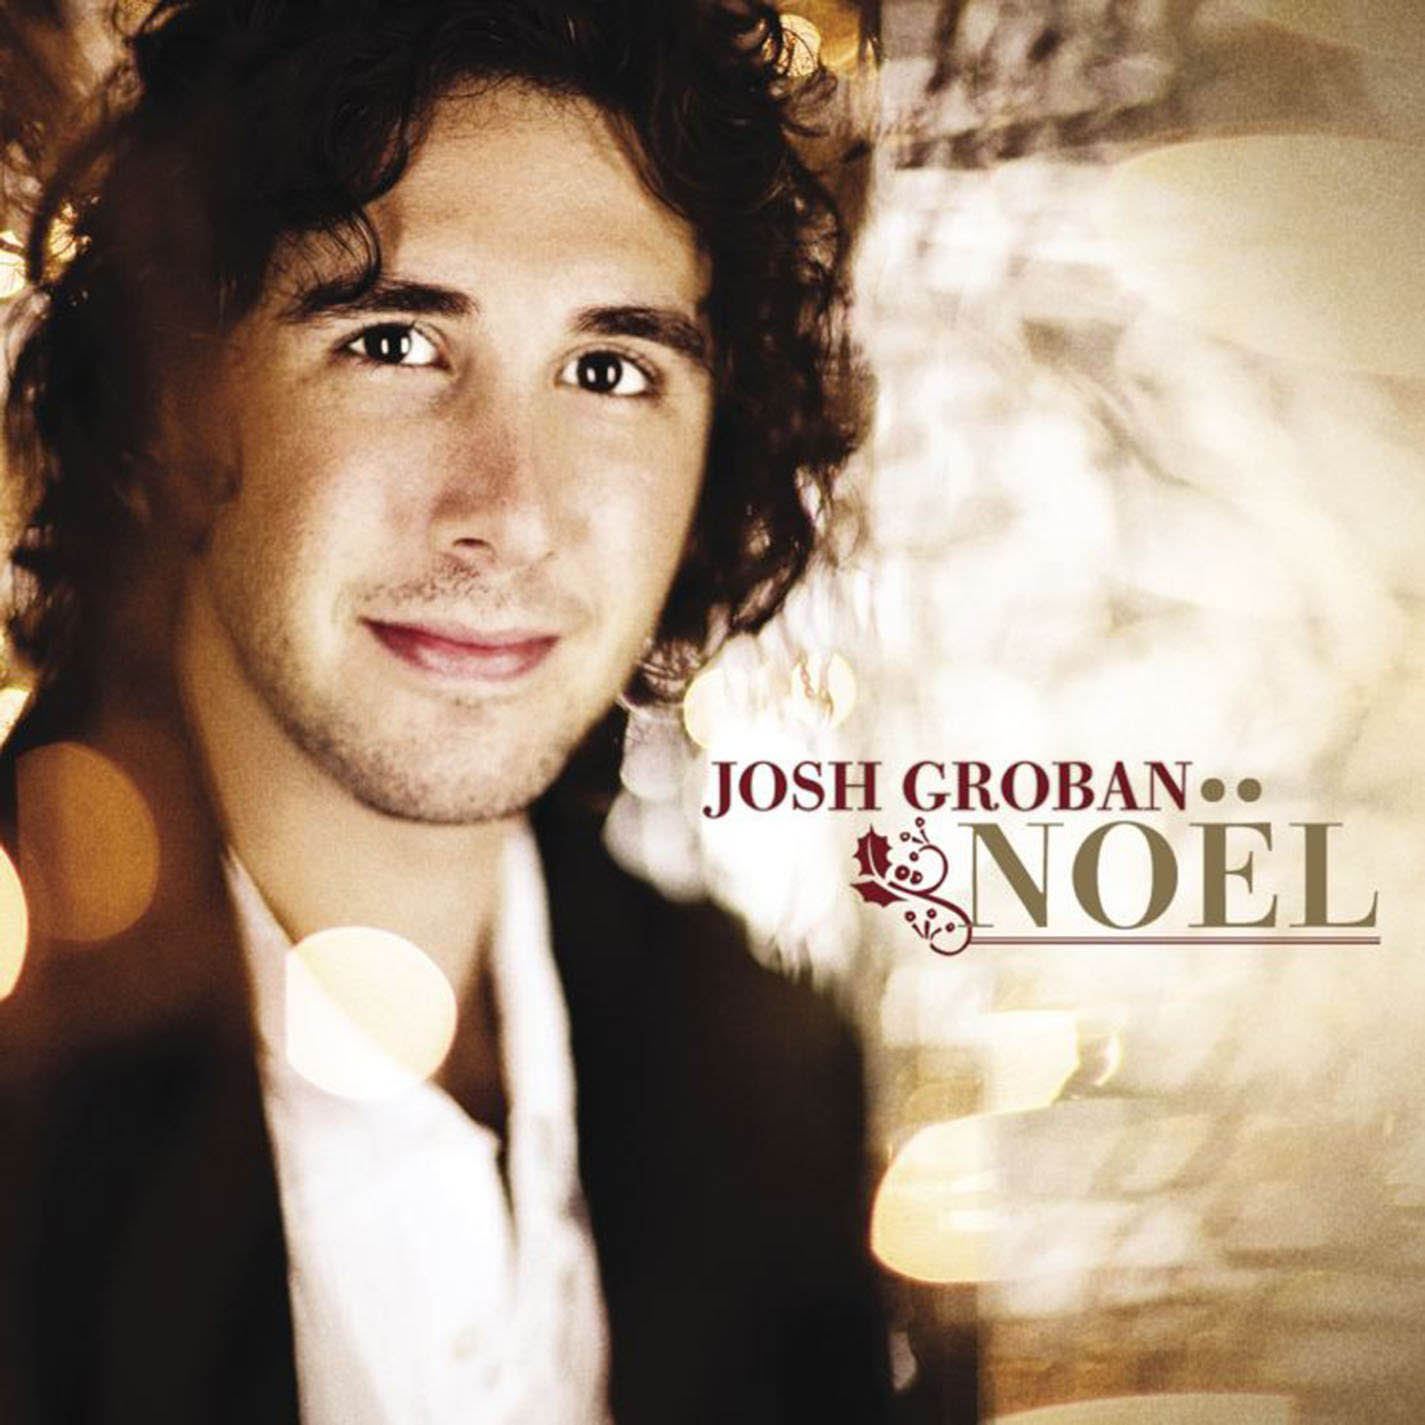 Josh Groban Noel (10th Anniversary Edition)